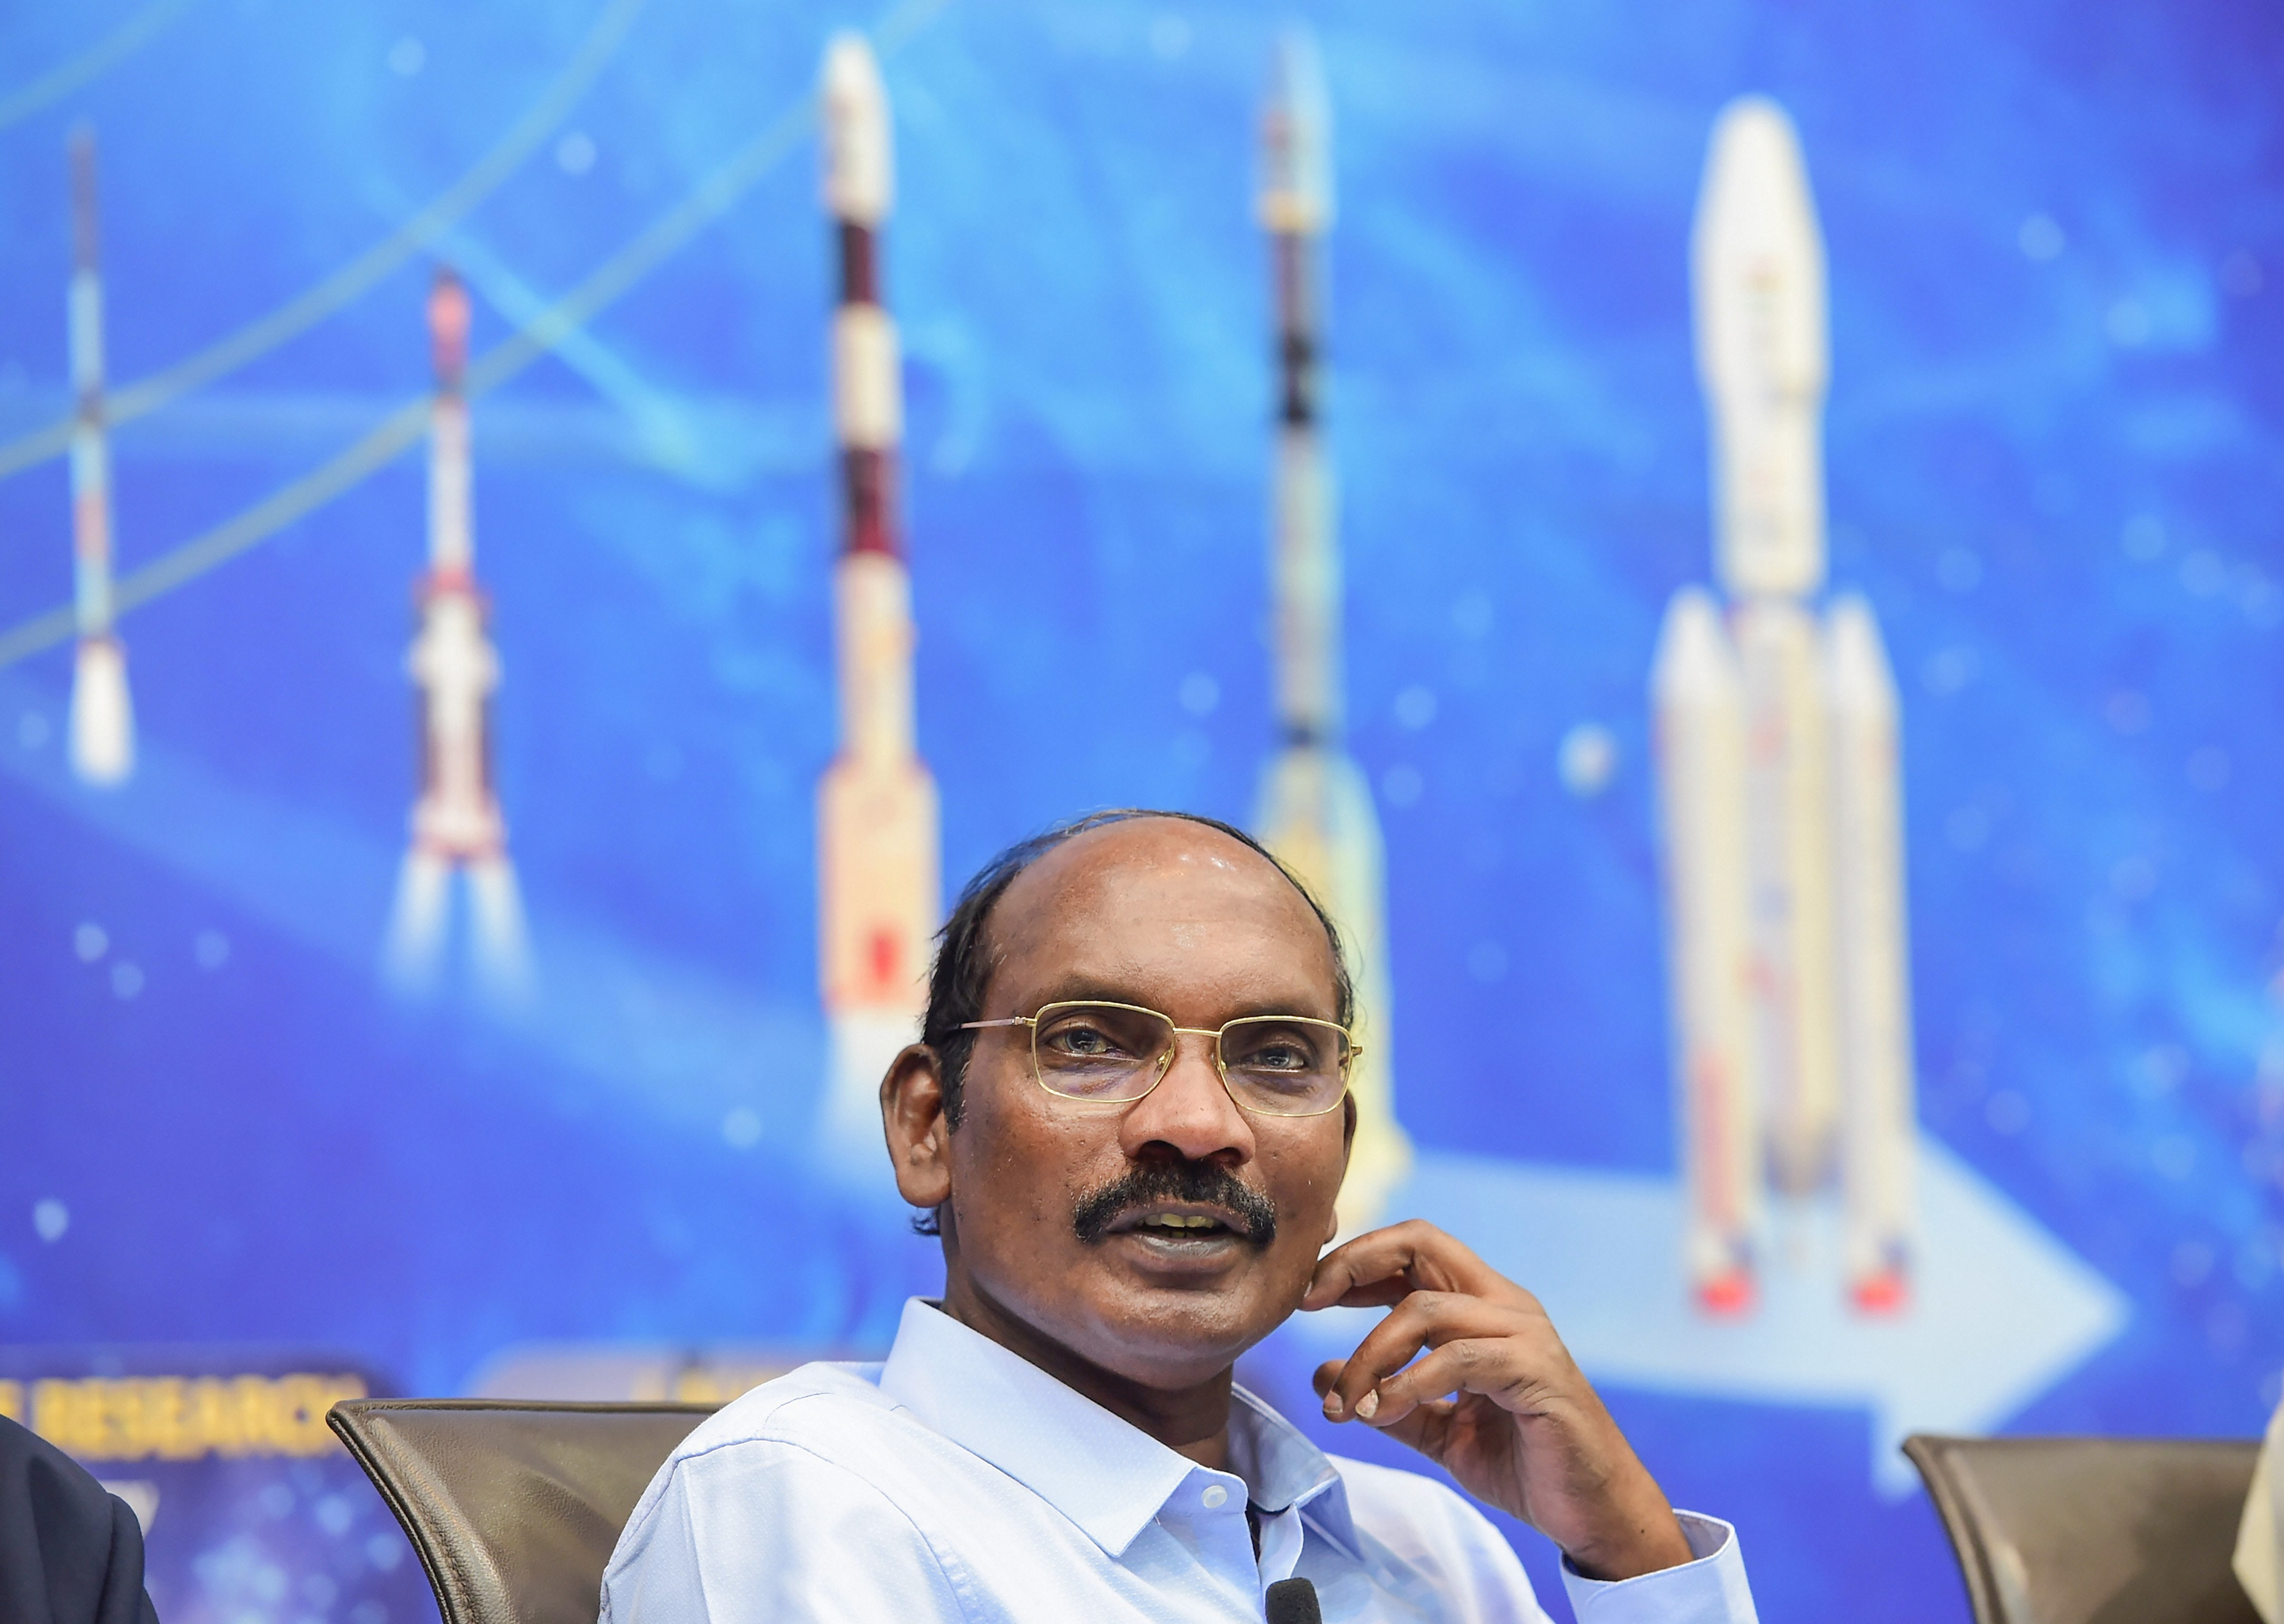 Isro chairman K. Sivan during a press conference at the space agency's headquarters in Bengaluru, Wednesday, January 1, 2020.